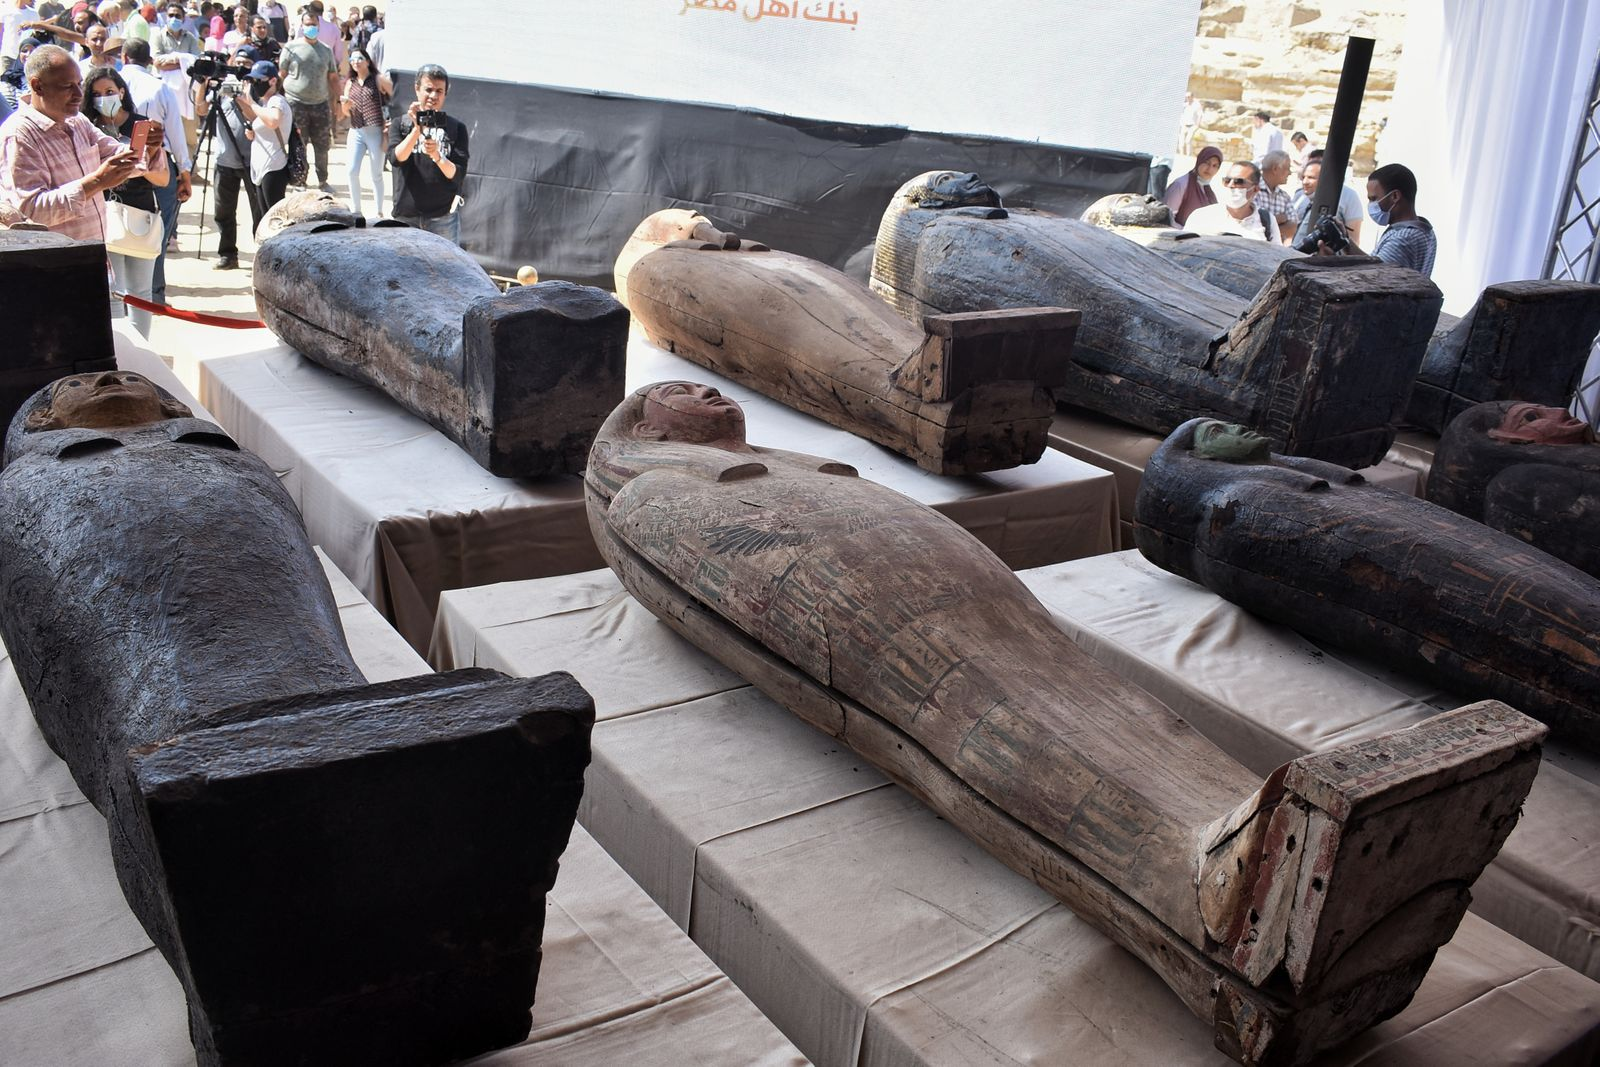 New Archaeological Discovery In Egypt